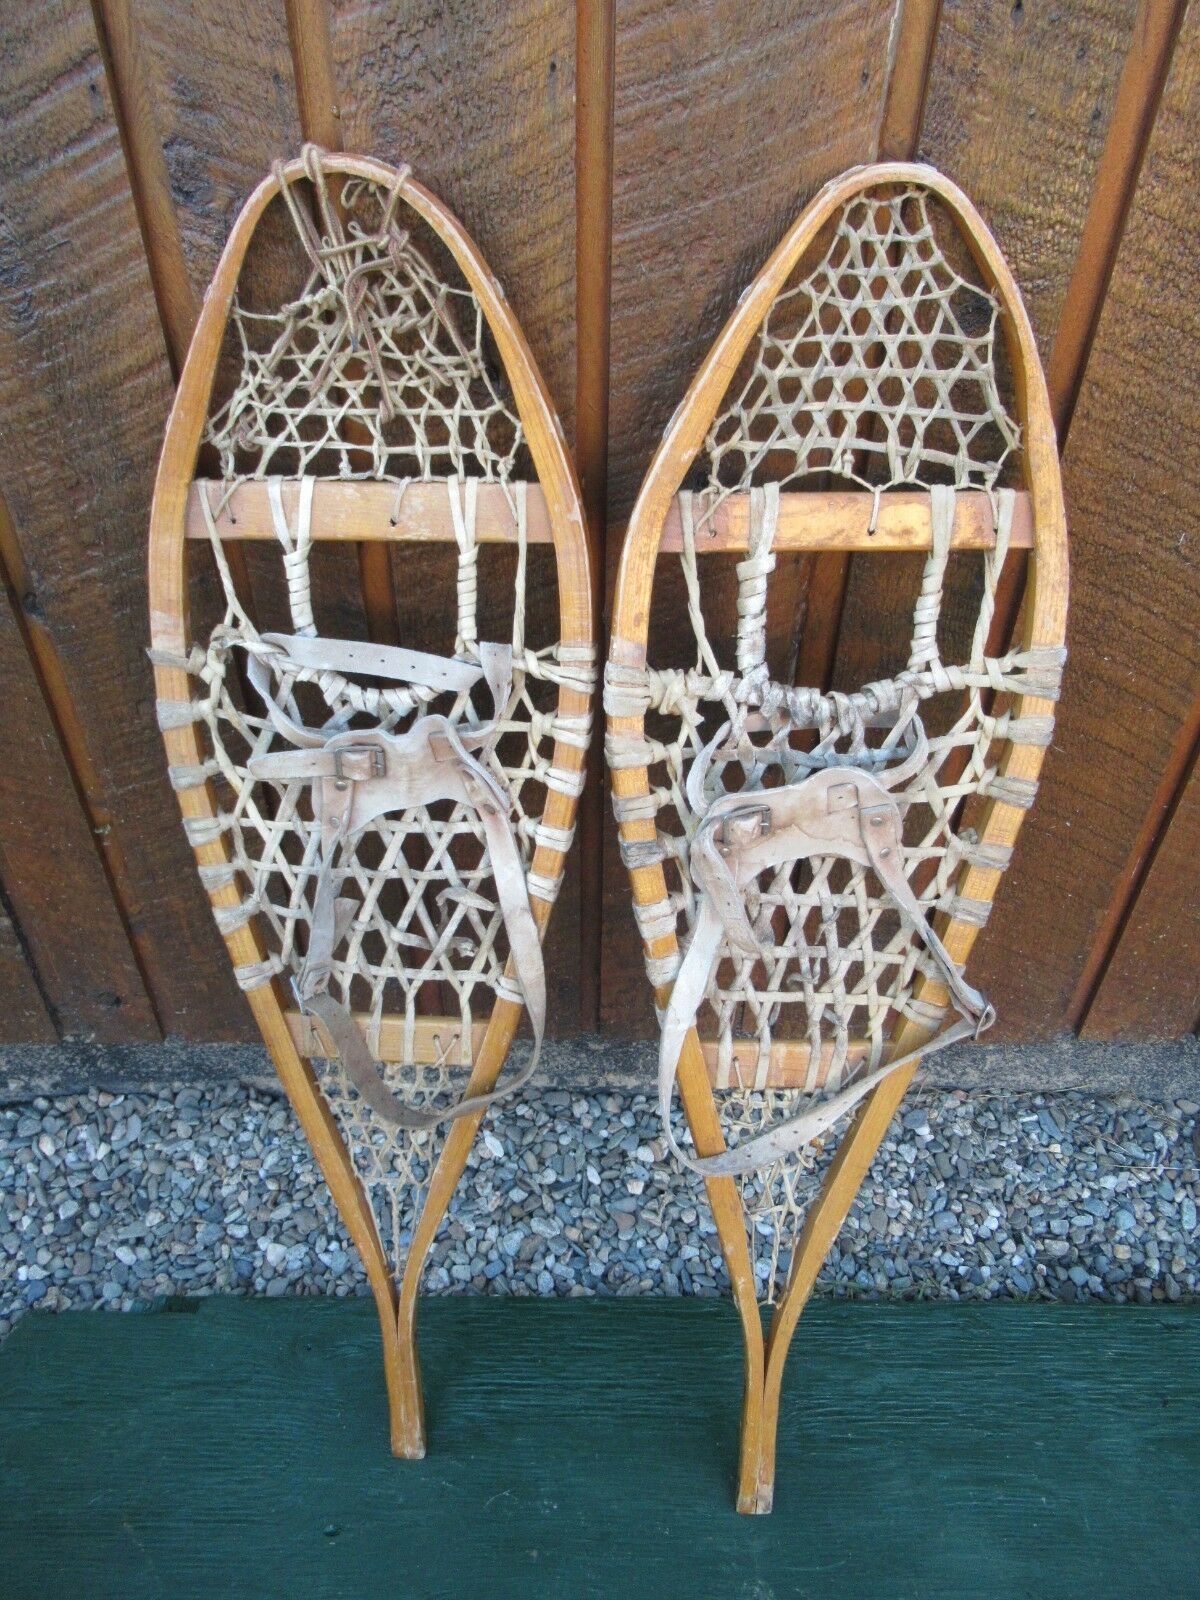 Snowschuhe 37  Long 11  Wide with Leather Bindings  Ready To Hang for Decoration